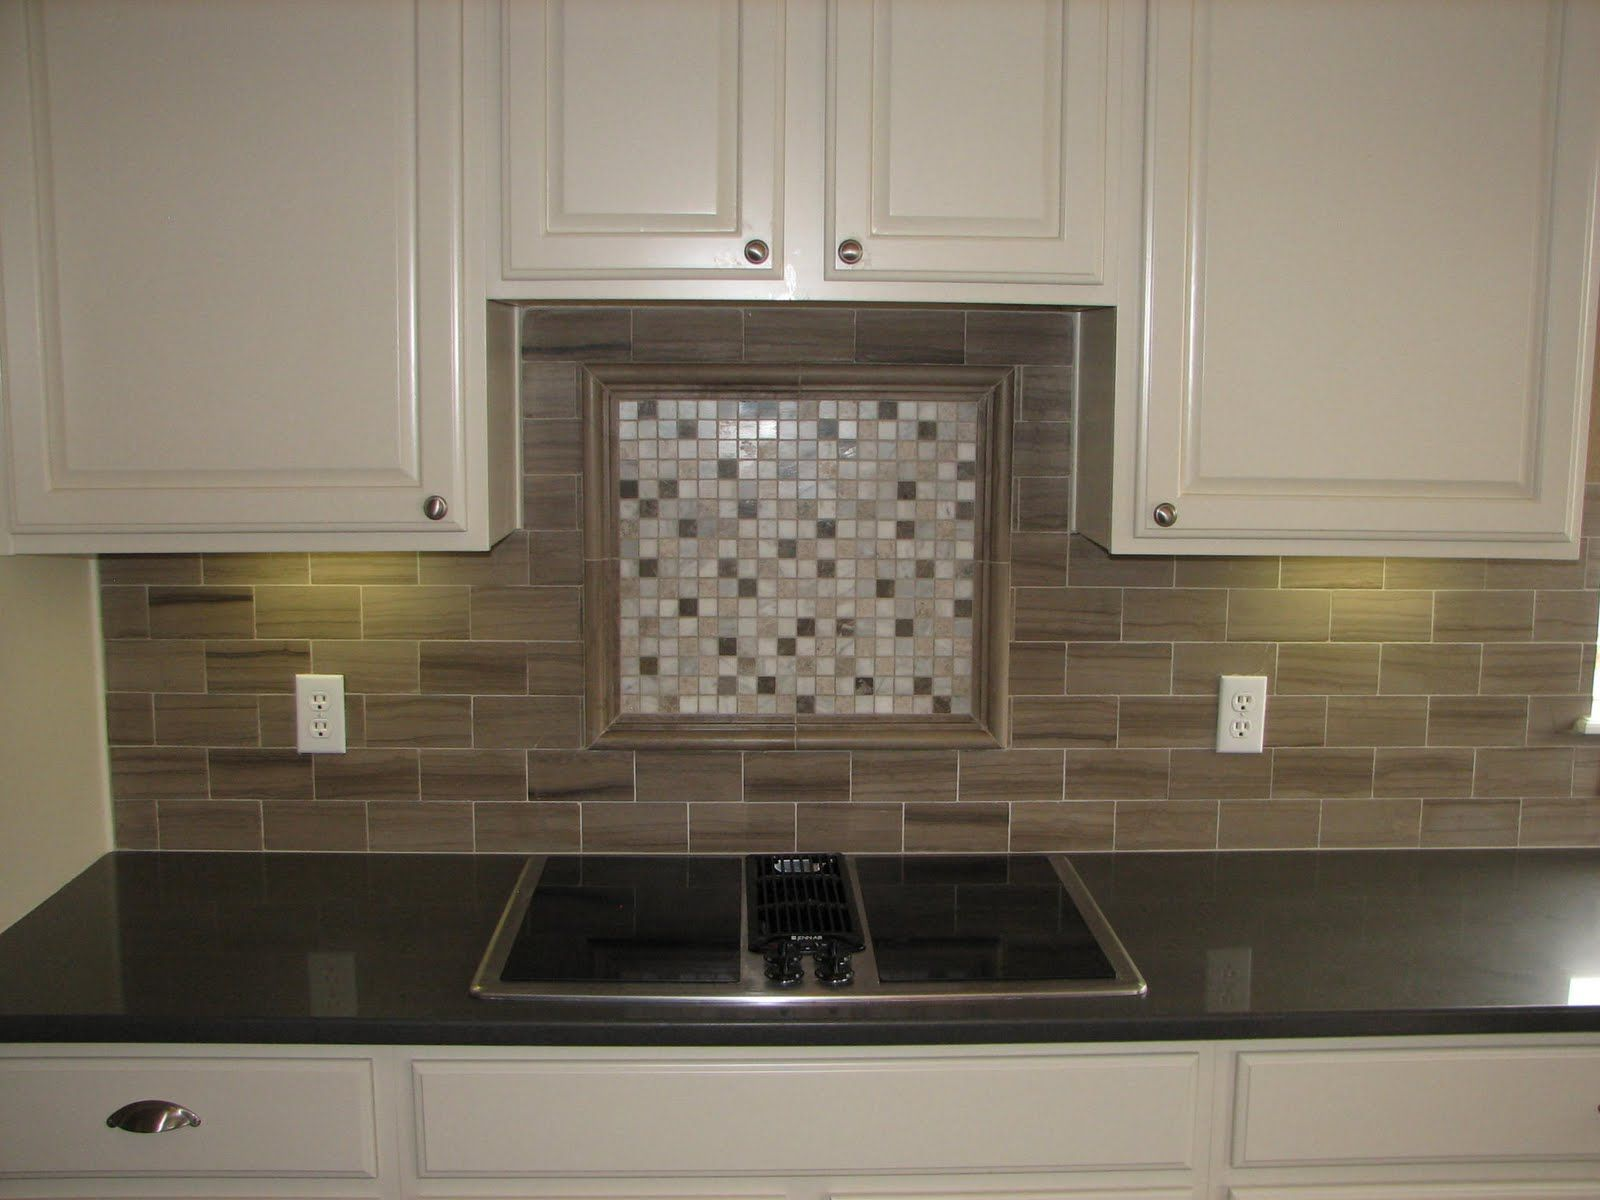 Tile backsplash with black cuntertop ideas tile design backsplash photos backsplash design Backsplash wall tile